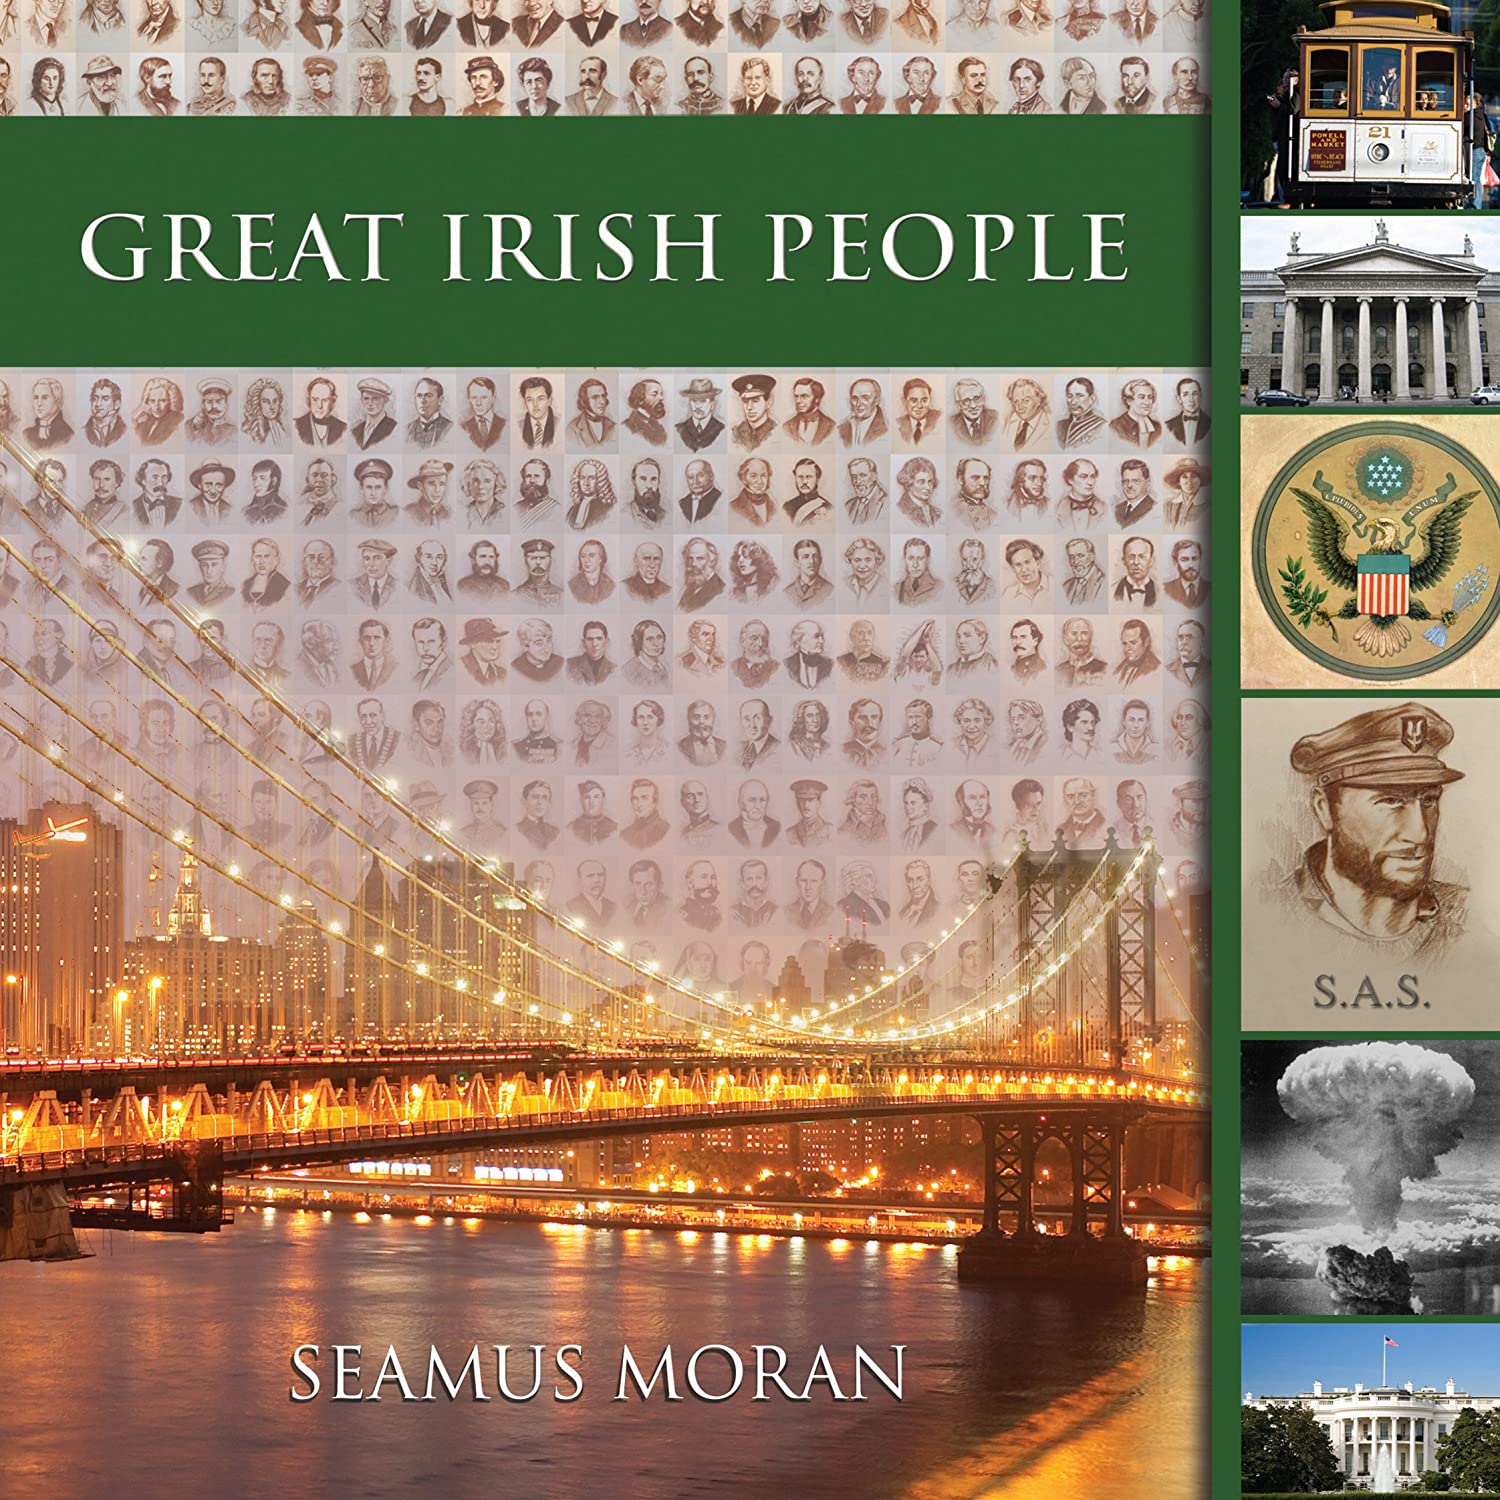 Seamus Moran - Great Irish People (2013) 91N1pG2w8RL._AA1500_